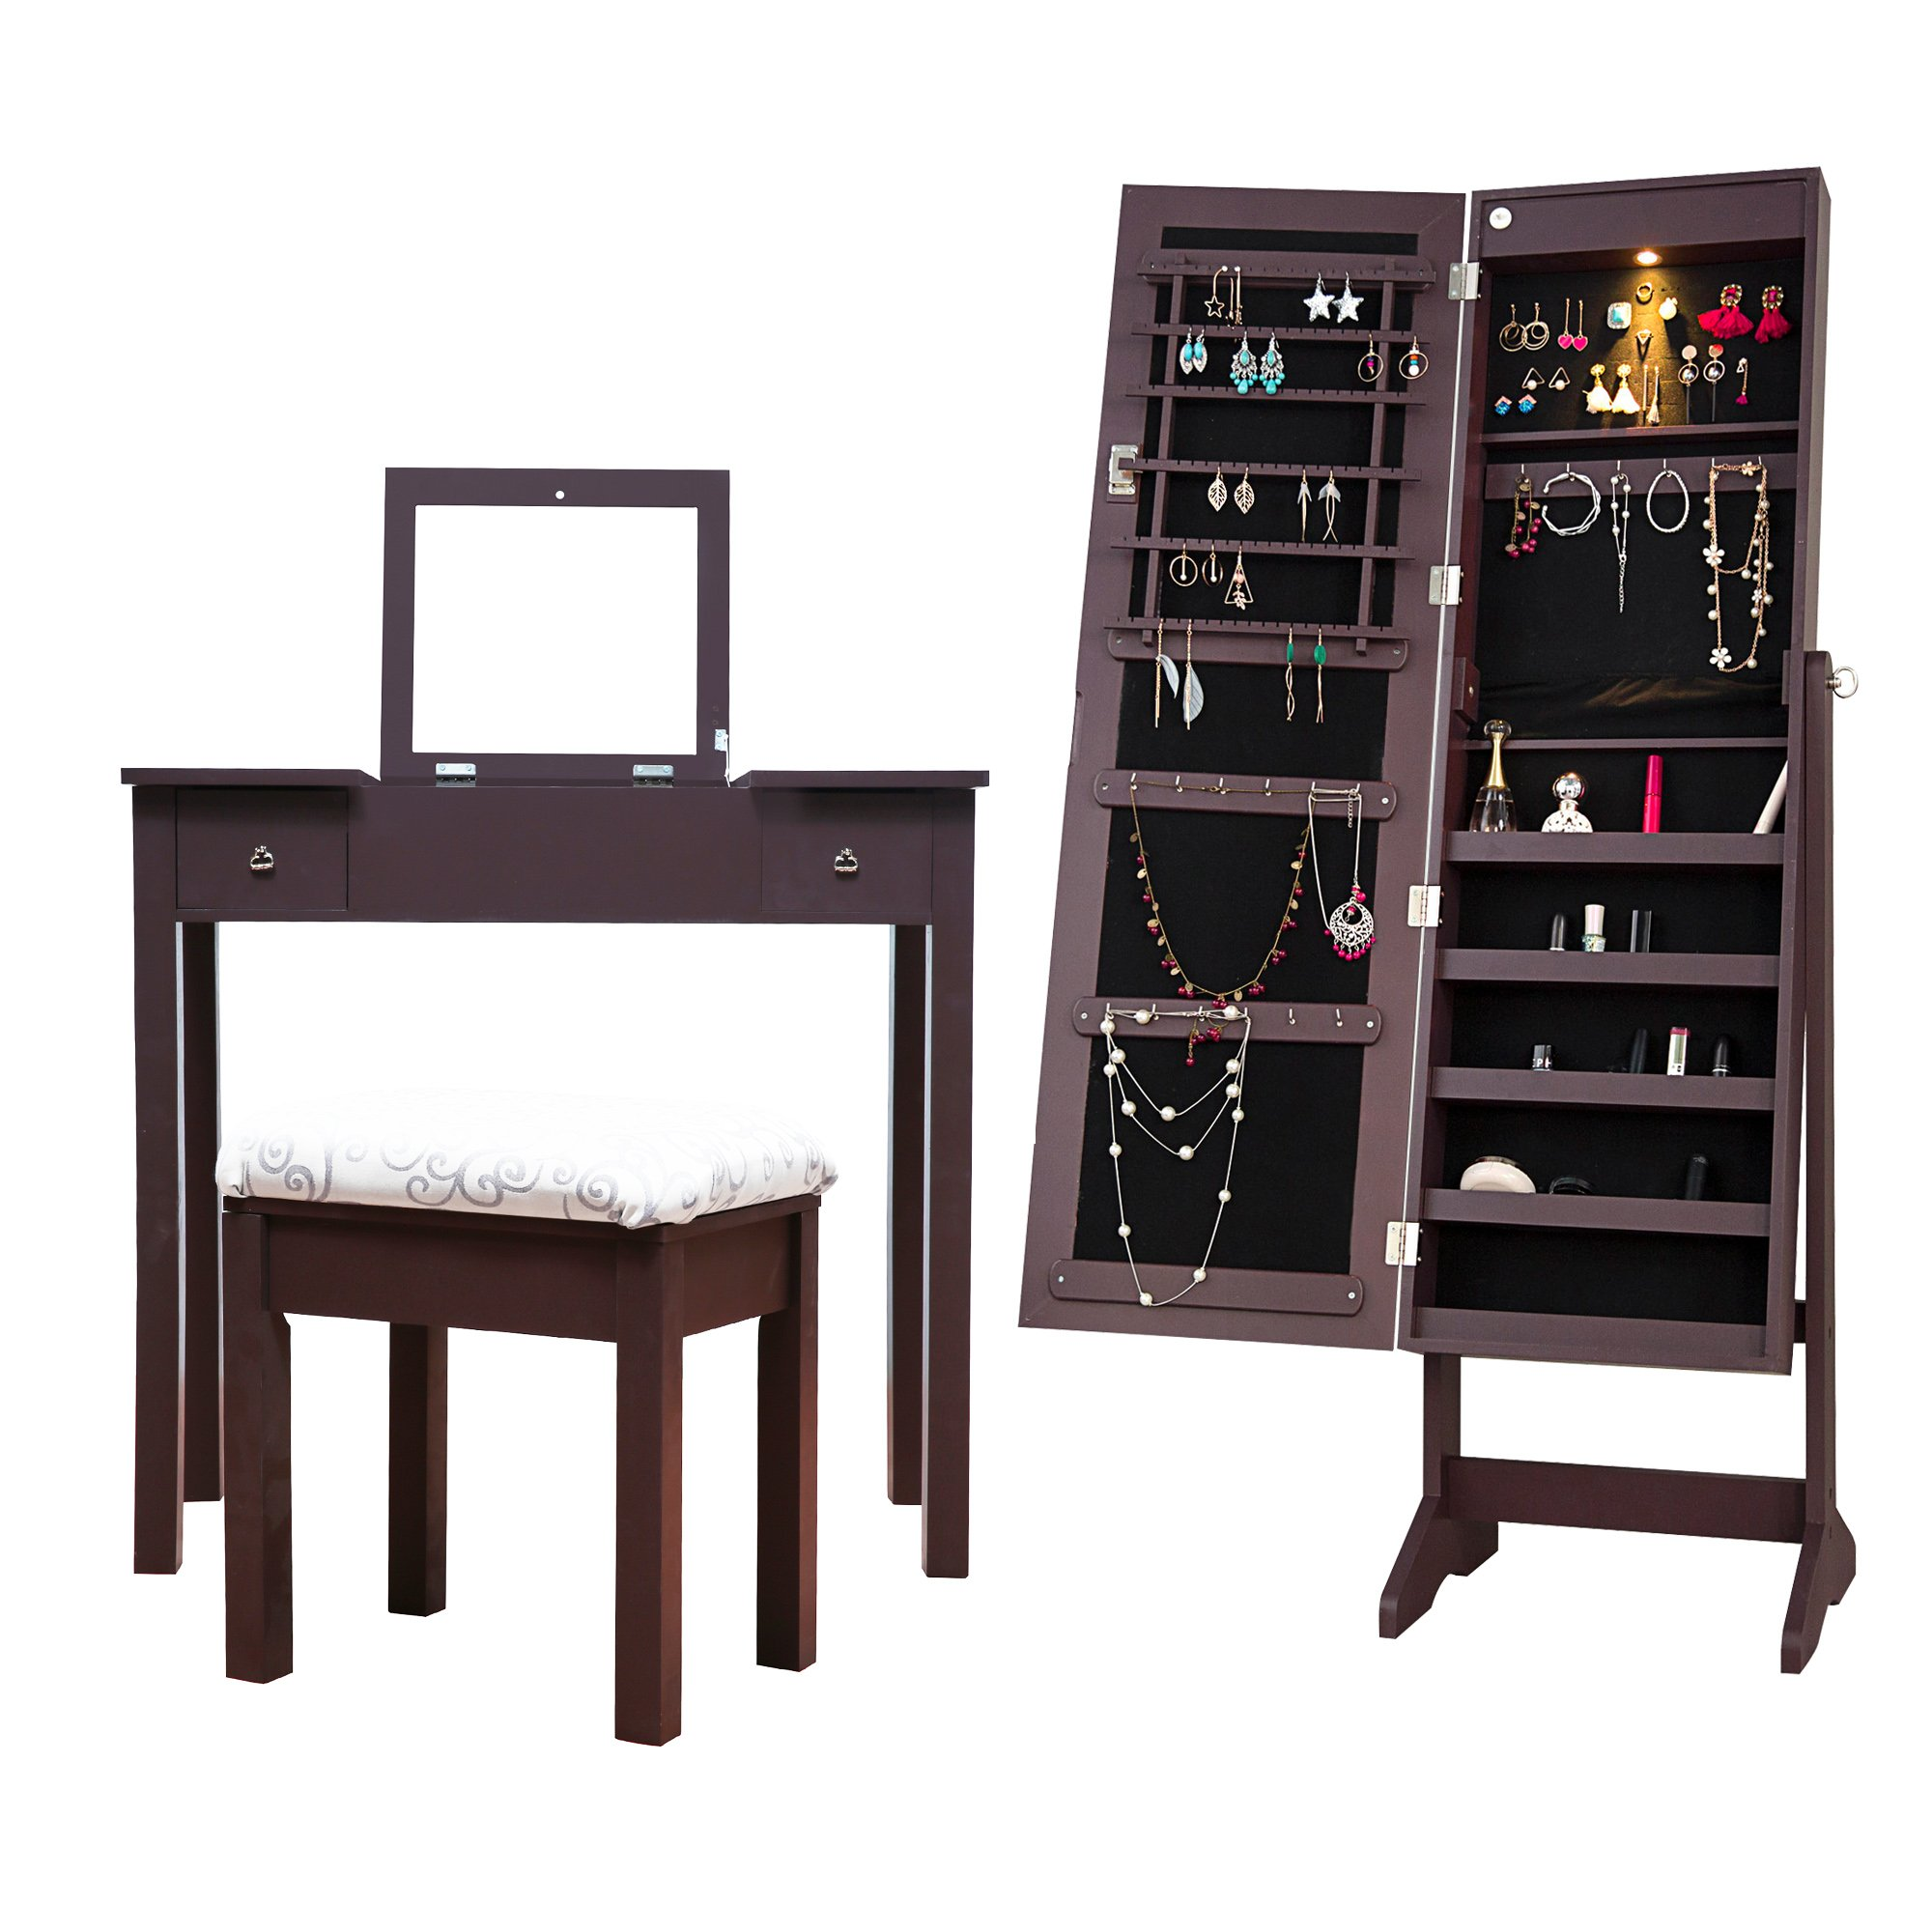 Cloud Mountain Mirrored Jewelry Armoire Jewelry Cabinet Free Standing with LED Light + Makeup Dressing Vanity Table Stool Set, Espresso by Cloud Mountain